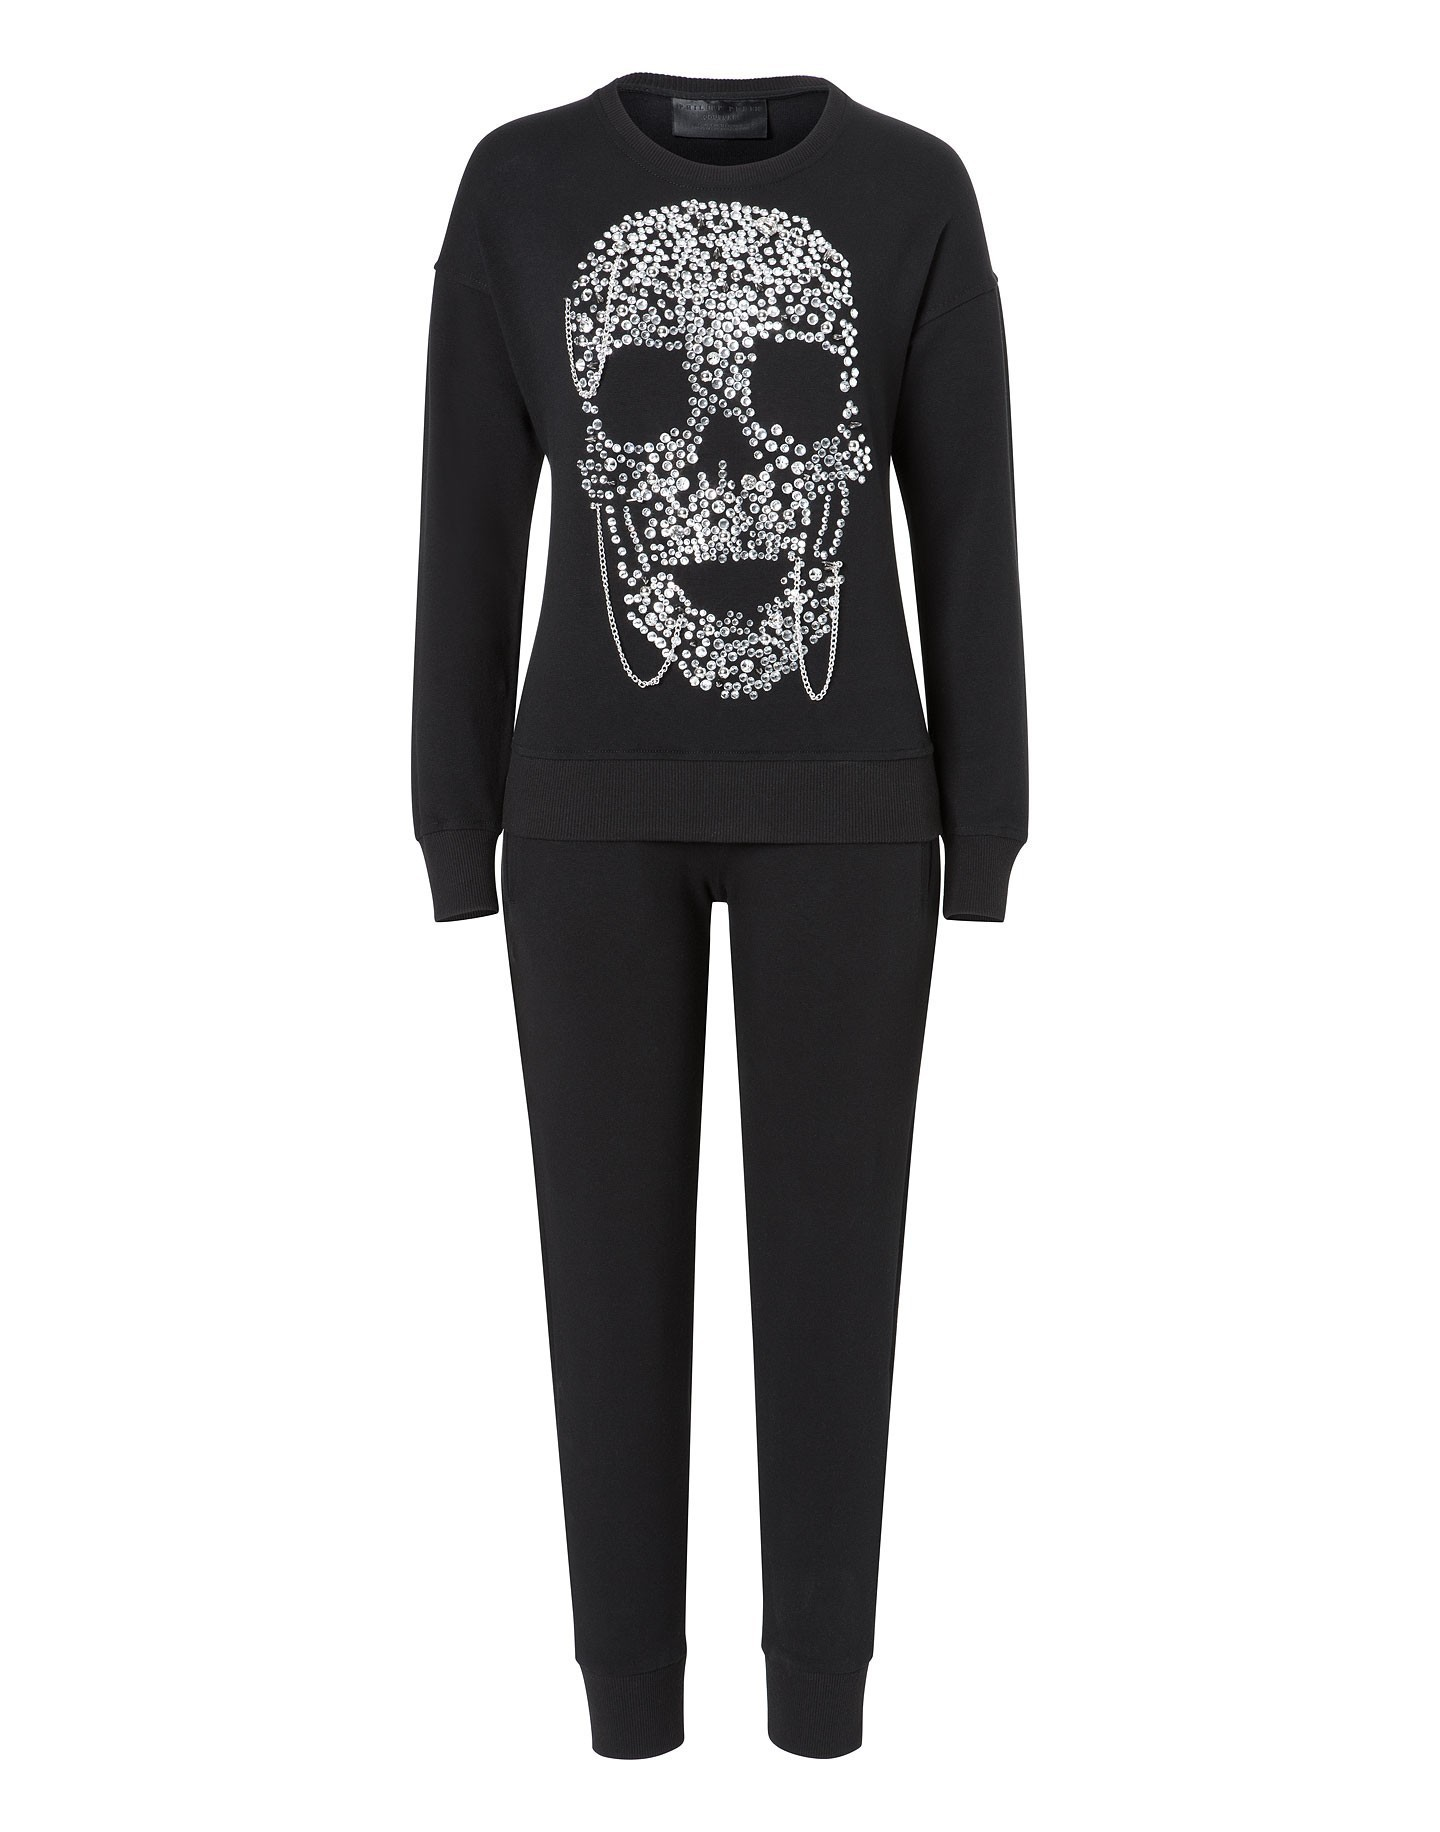 "Philipp plein dres ""tired"" cw197043"